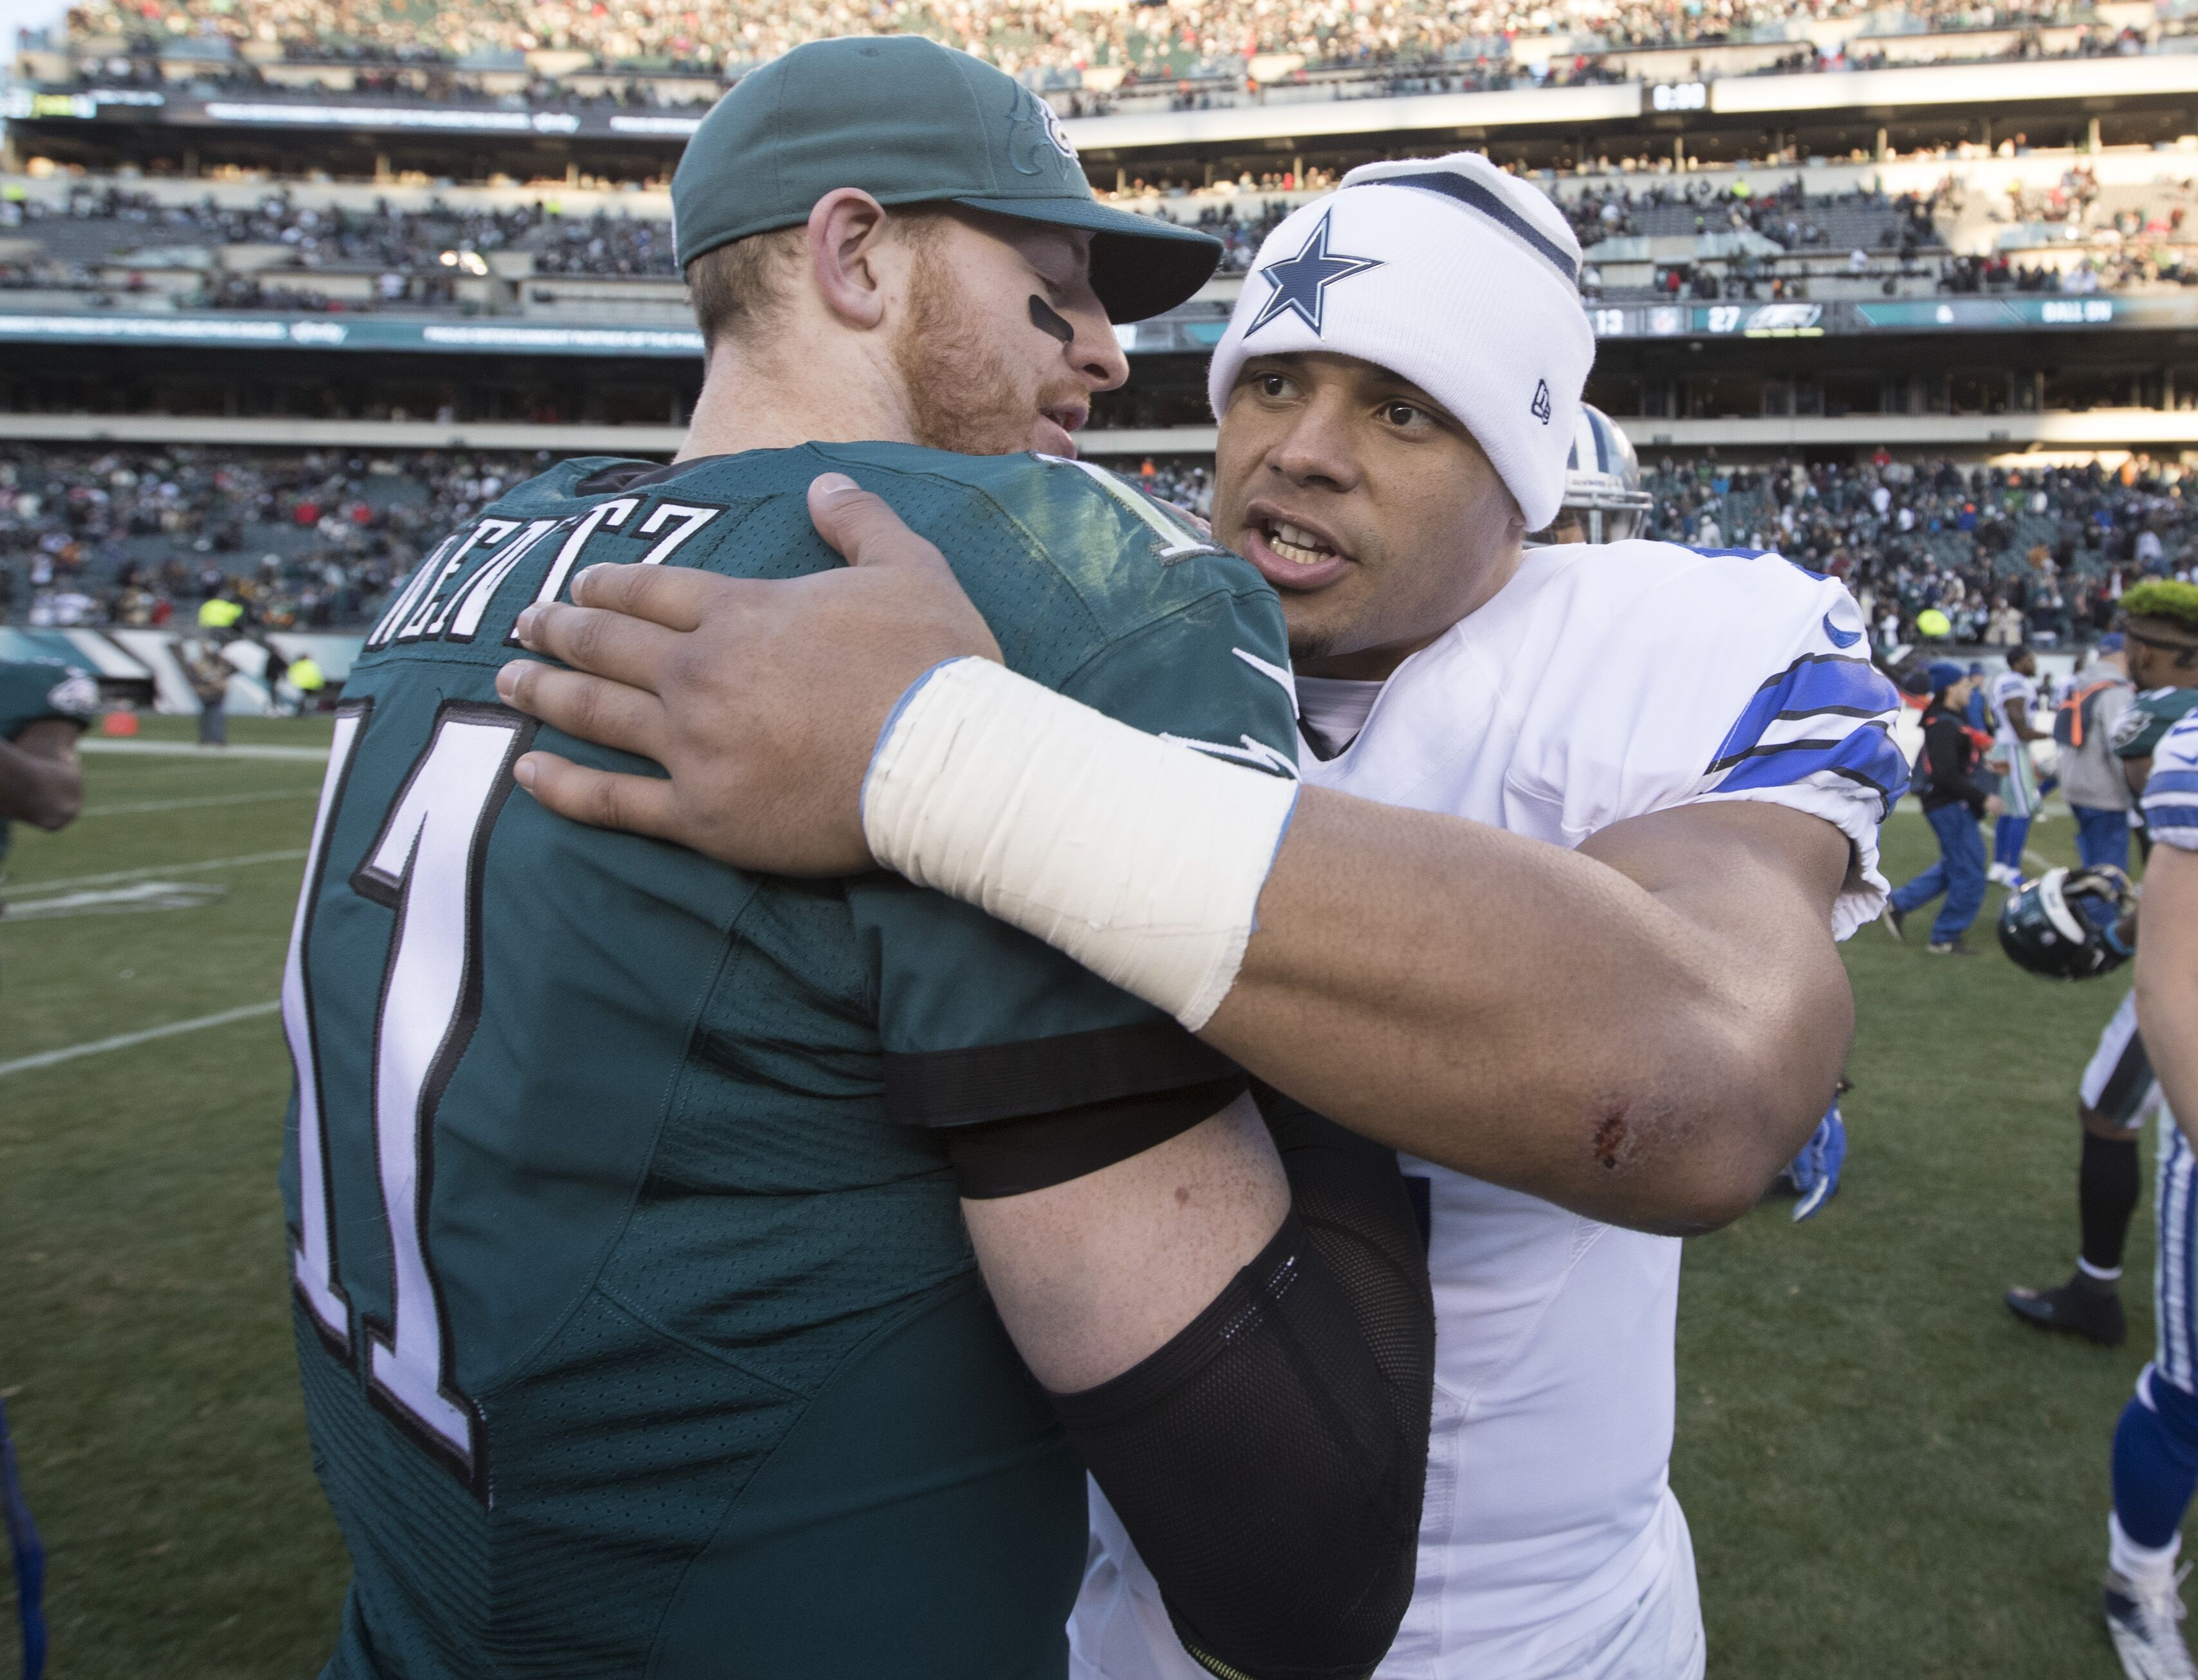 Cowboys at Eagles: Expert reveals Philly's biggest weakness